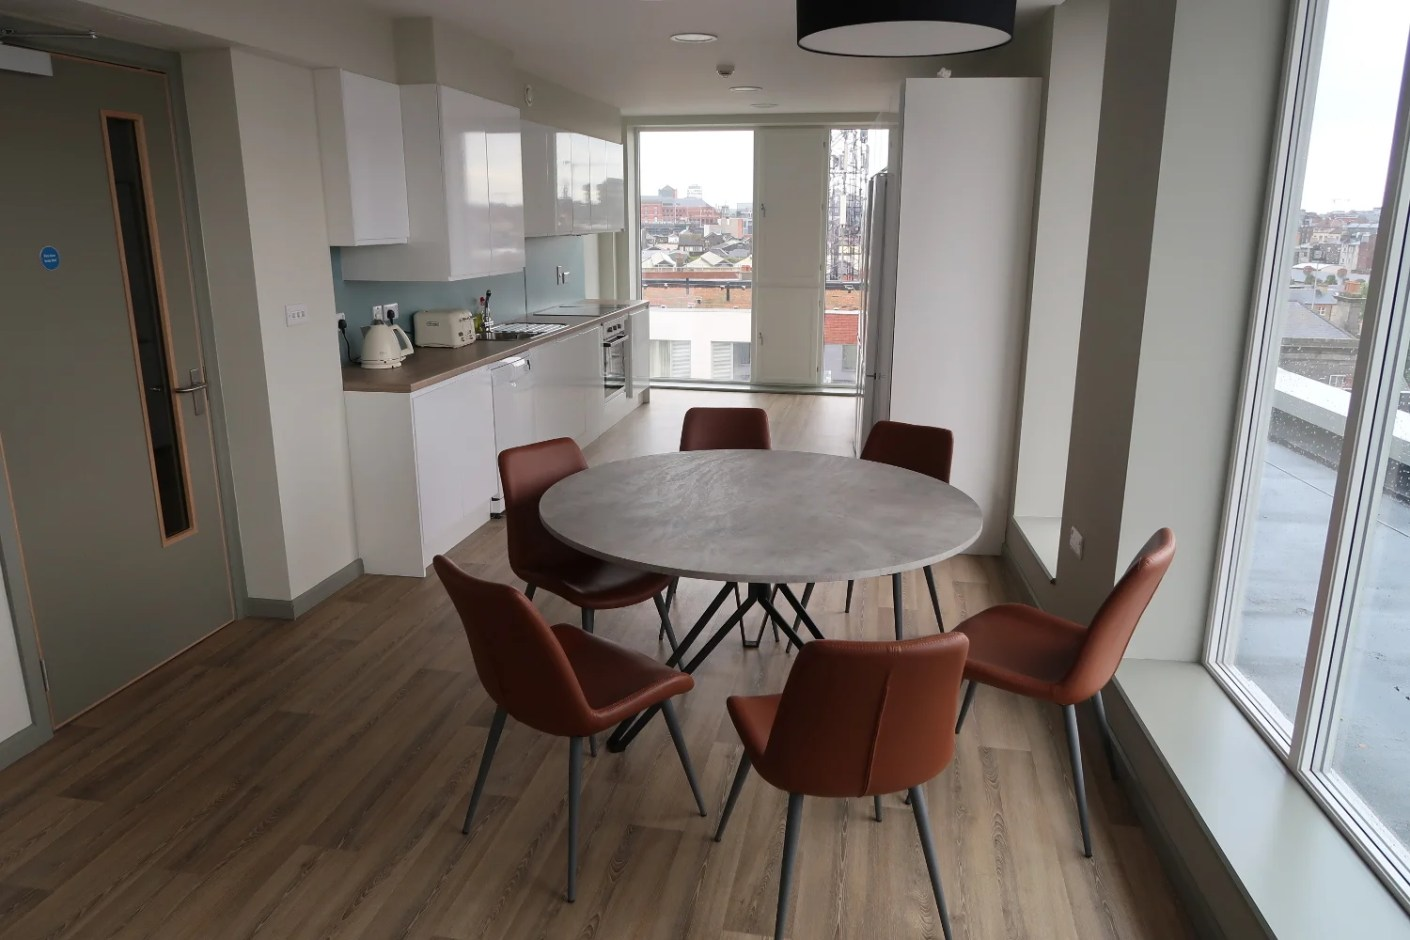 The shared kitchen and dining area in our student housing apartment.